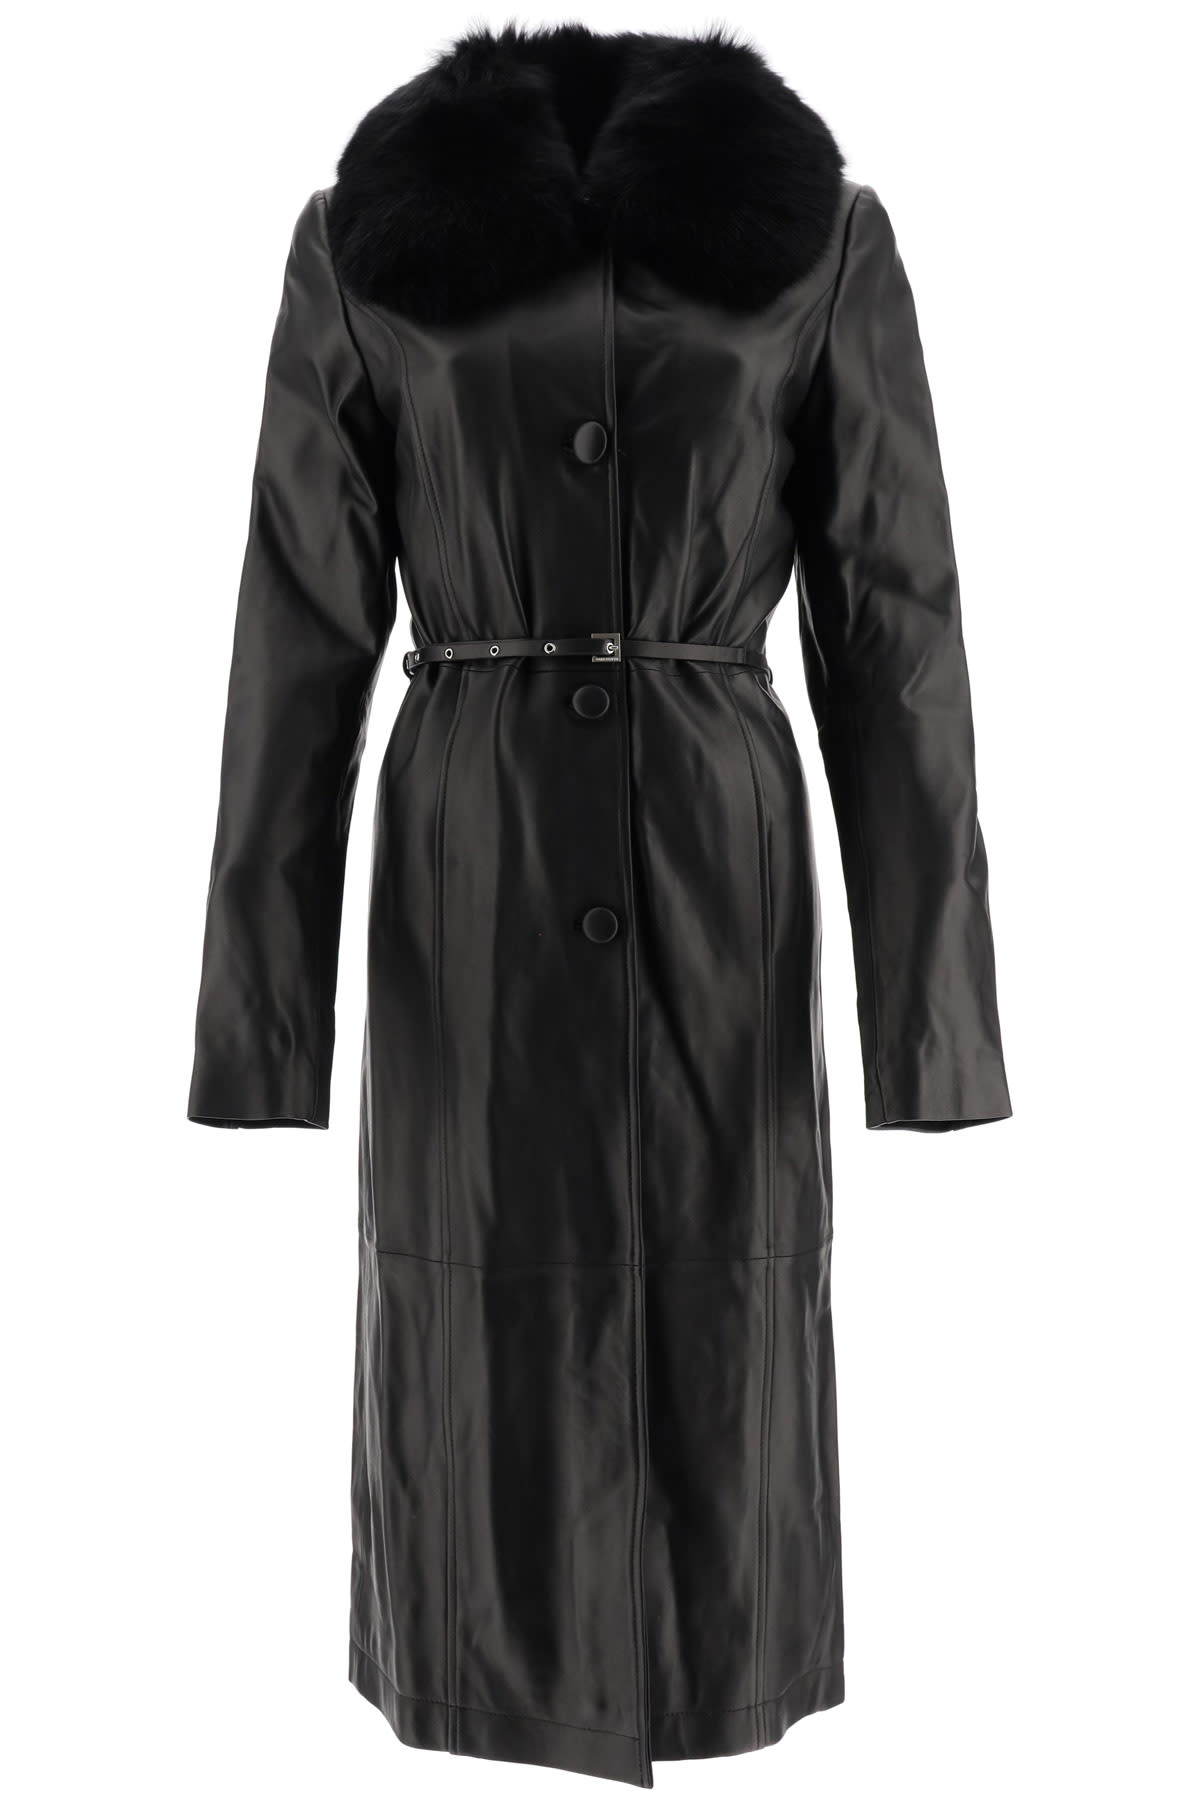 Saks Potts CHARLOT LEATHER COAT